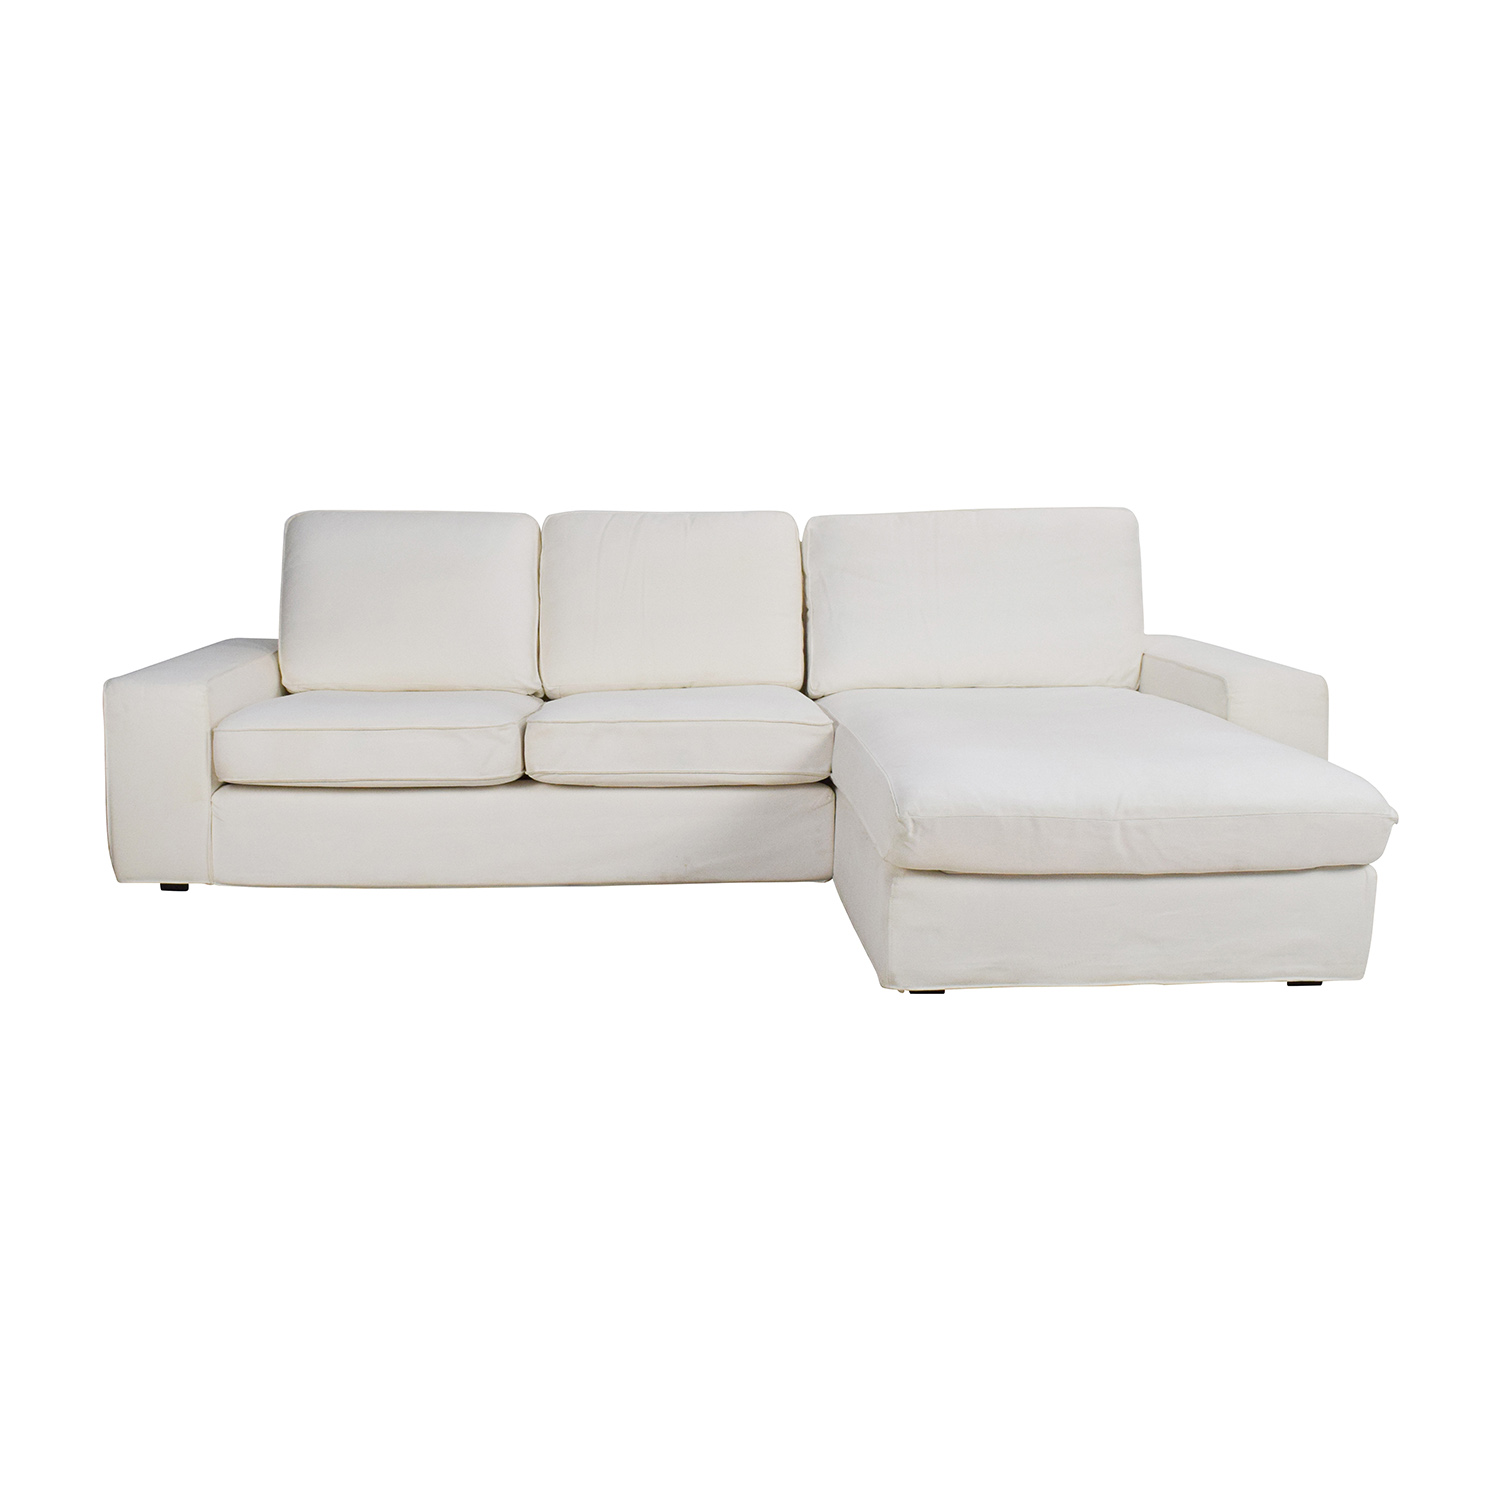 Sofa Ikea Chaise 69 Off Ikea Ikea Kivik Sofa And Chaise Sofas